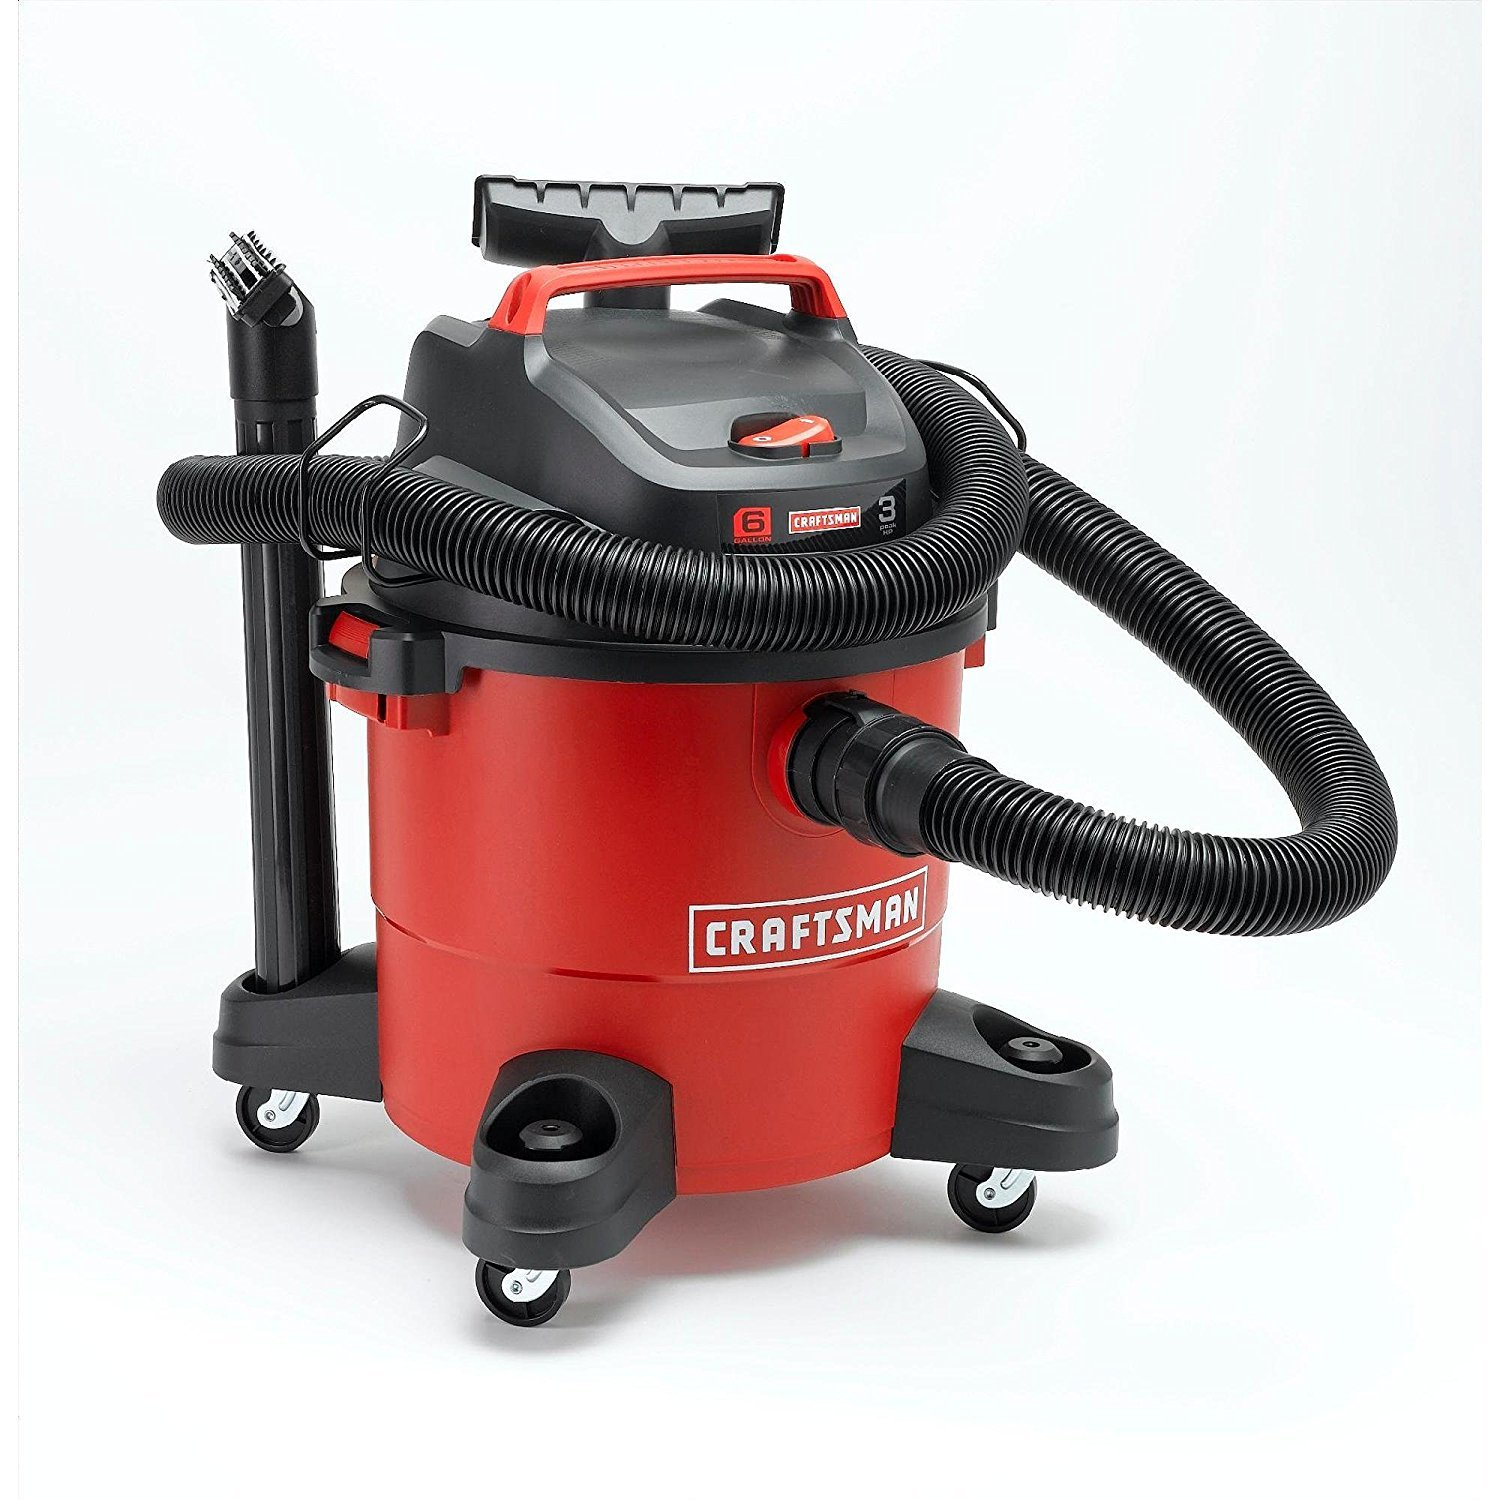 Craftsman 12004 6 Gallon 3 Peak HP Wet Dry Vac 2 PACK